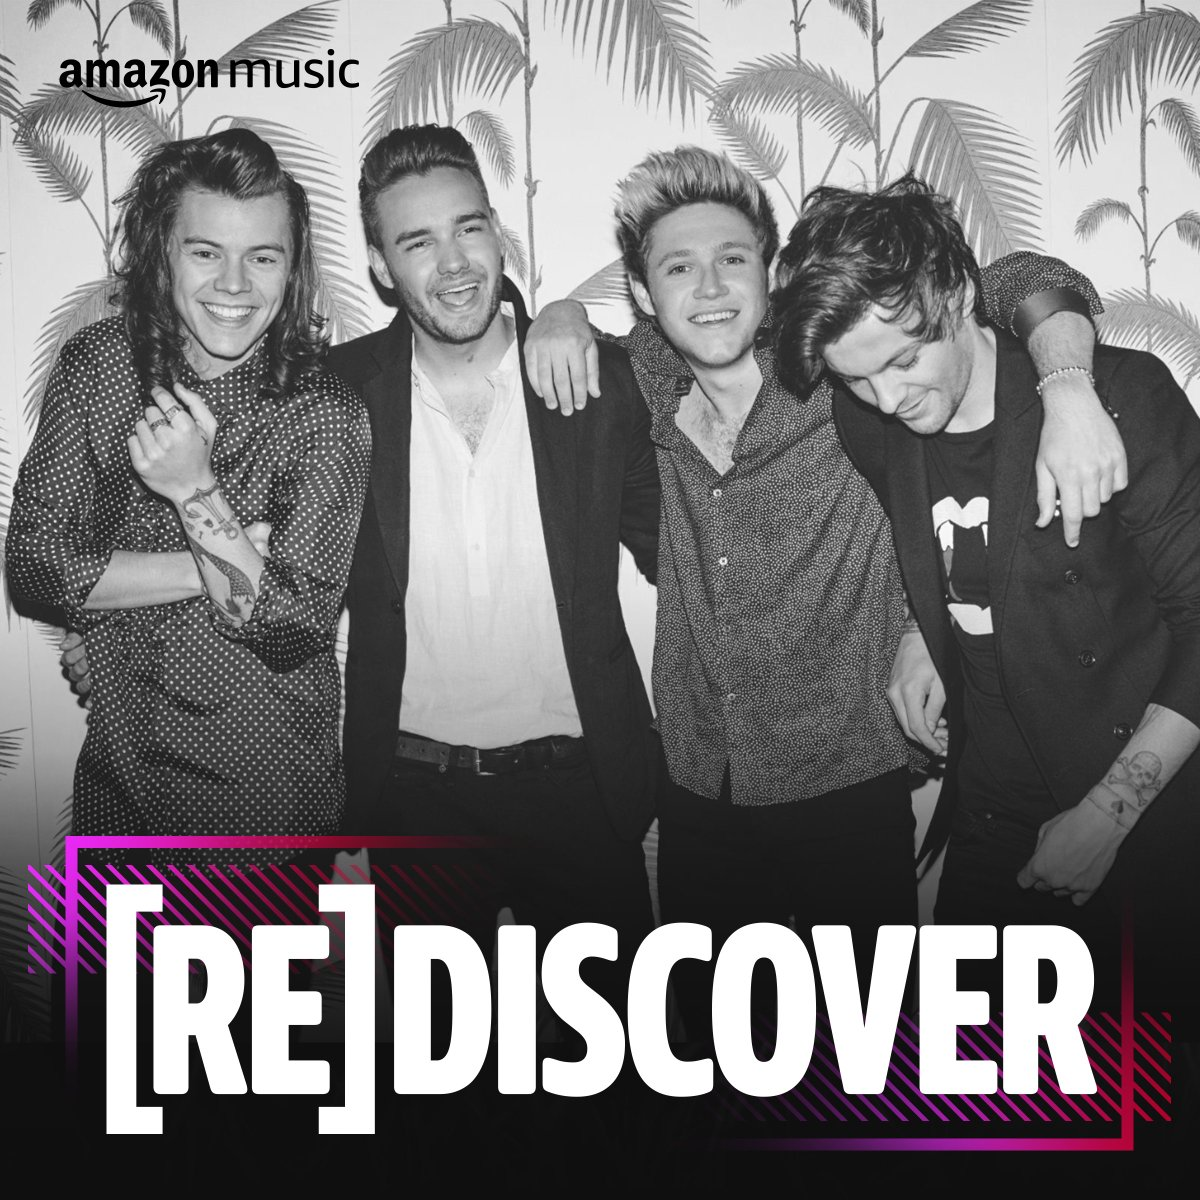 Have you guys seen the brand new (Re)Discover One Direction playlist on @AmazonMusic? https://t.co/XixgdDOkai https://t.co/xOIjxdNlc7